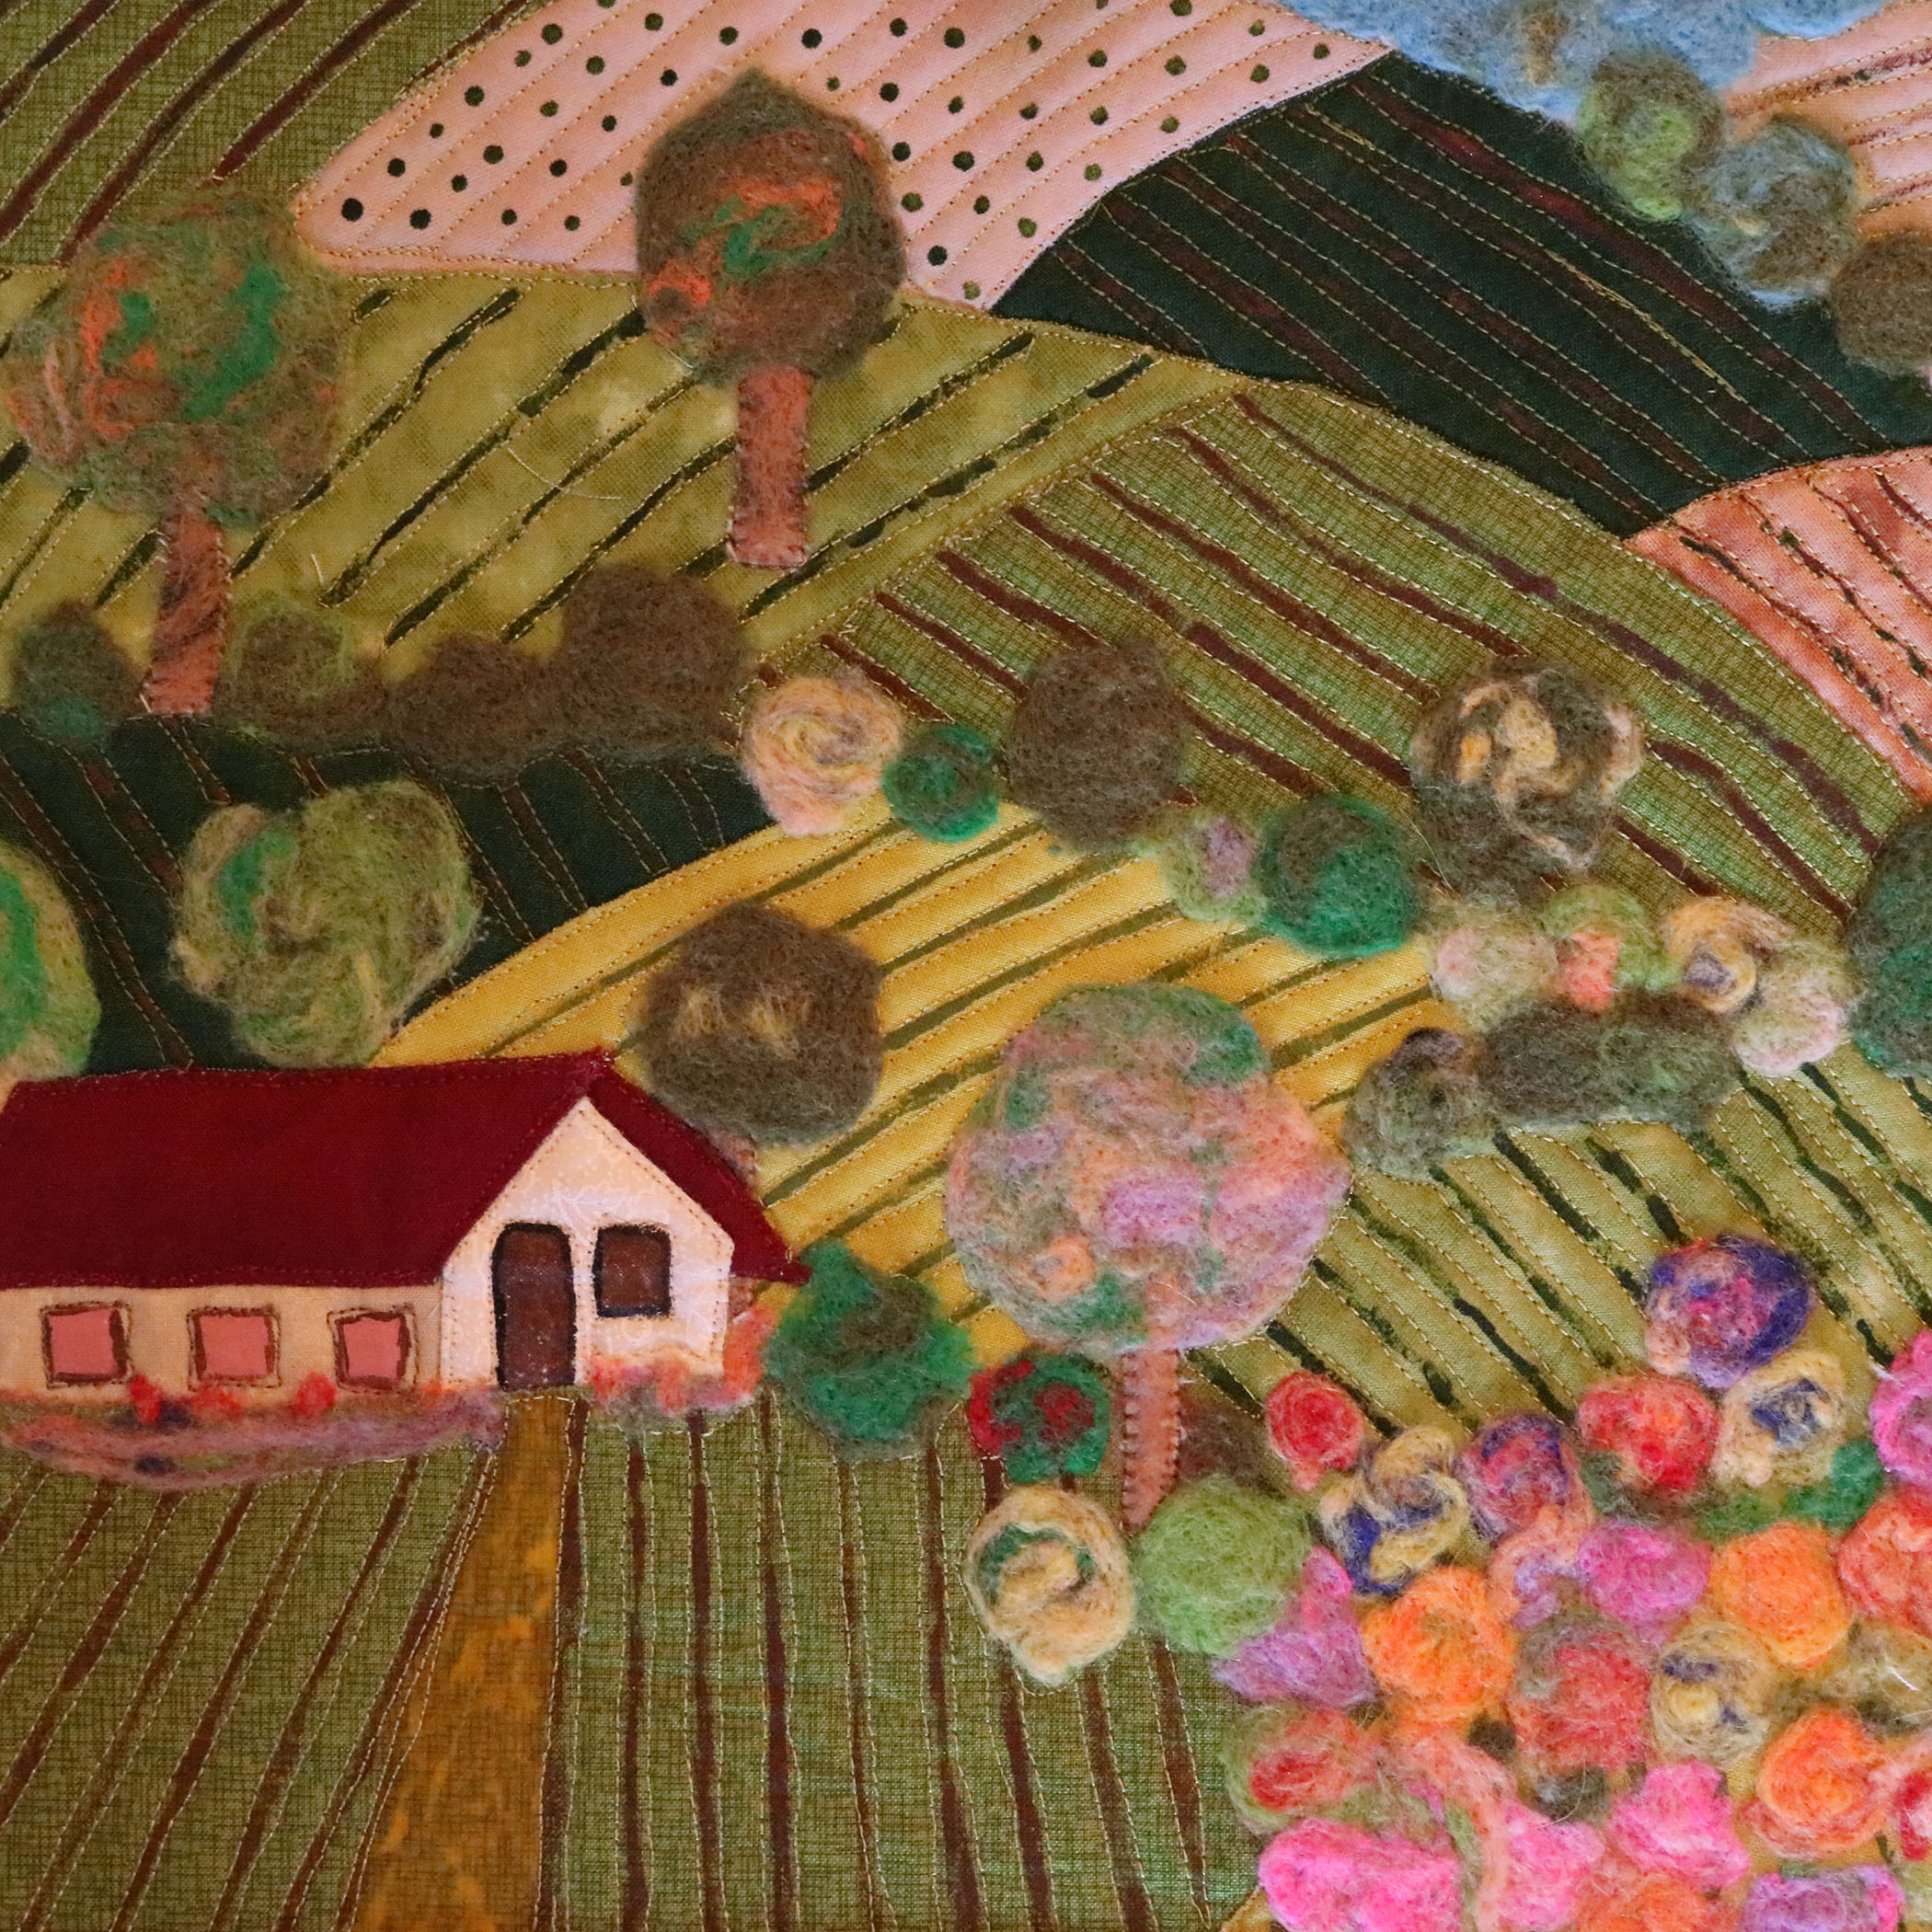 <em>Countryside in Spring</em>, María González Rico, Alcorcon, Spain